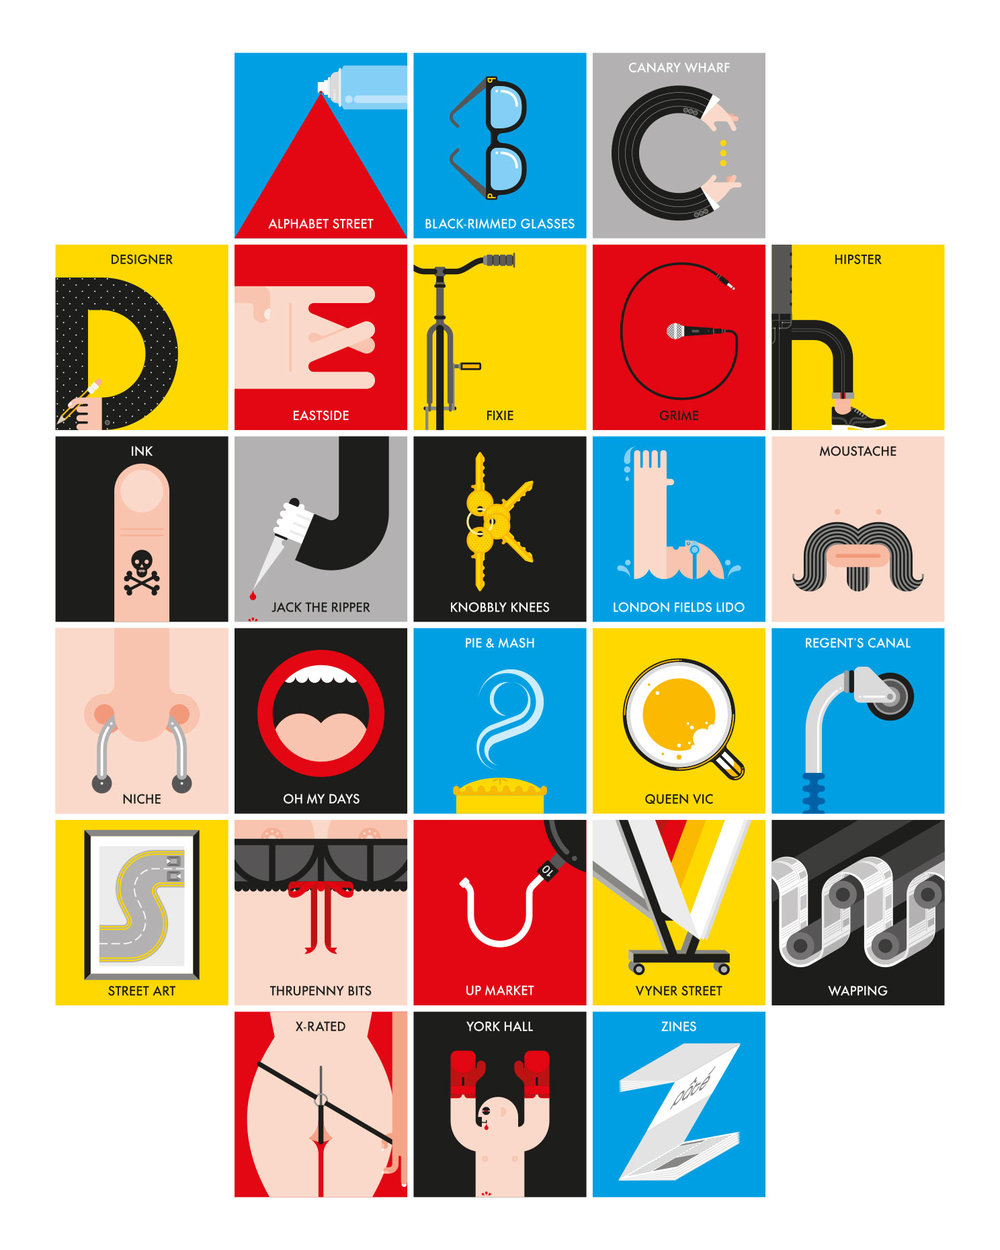 Pate_East_End_Alphabet.jpg